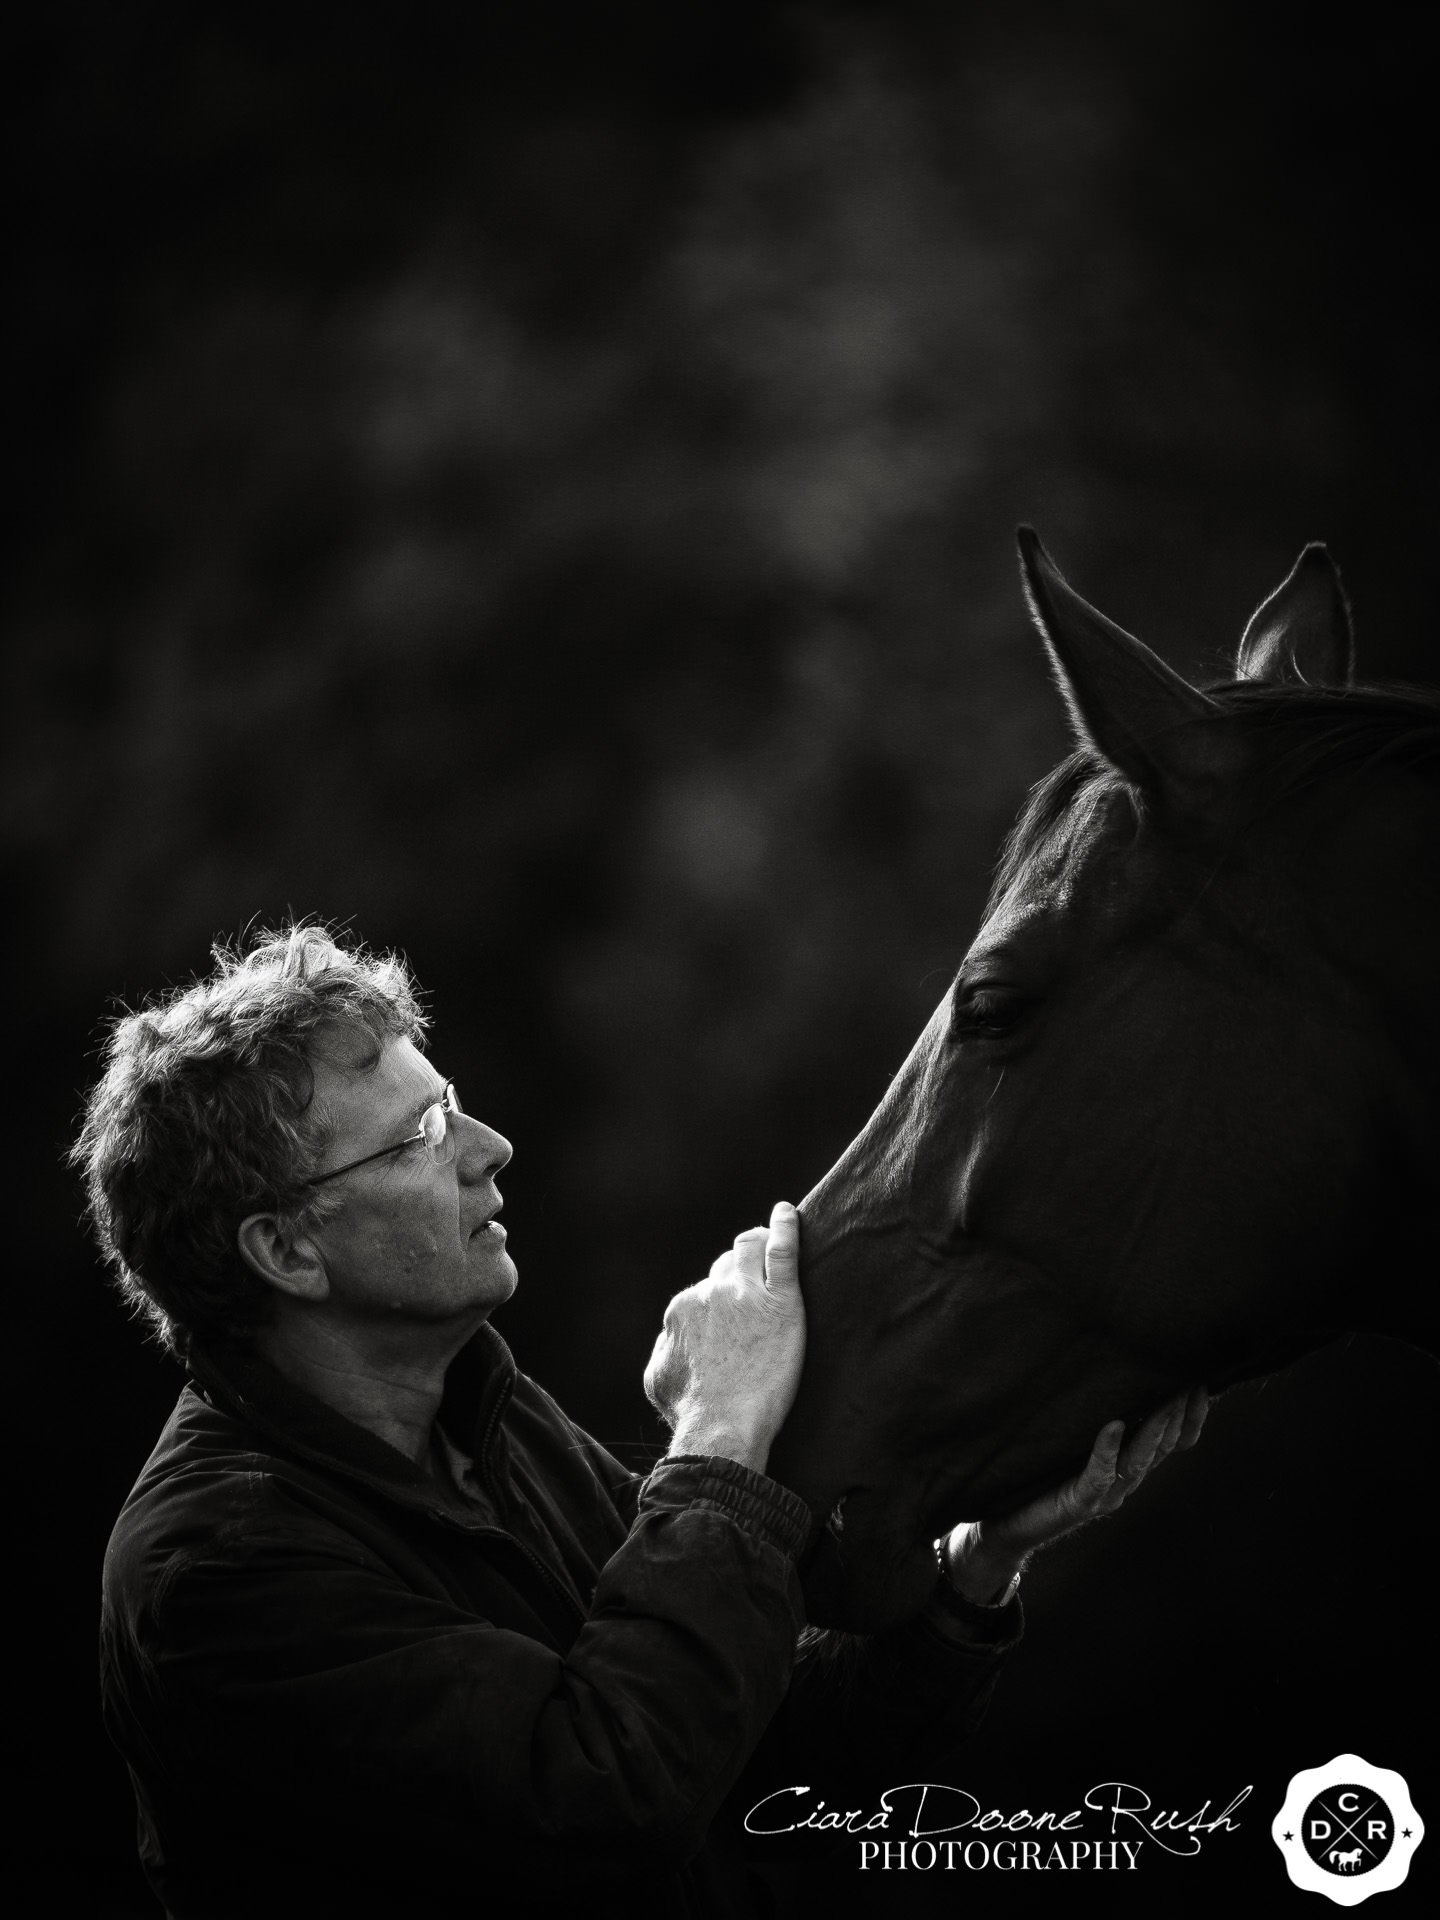 A man and his horse on a horse and rider photo shoot